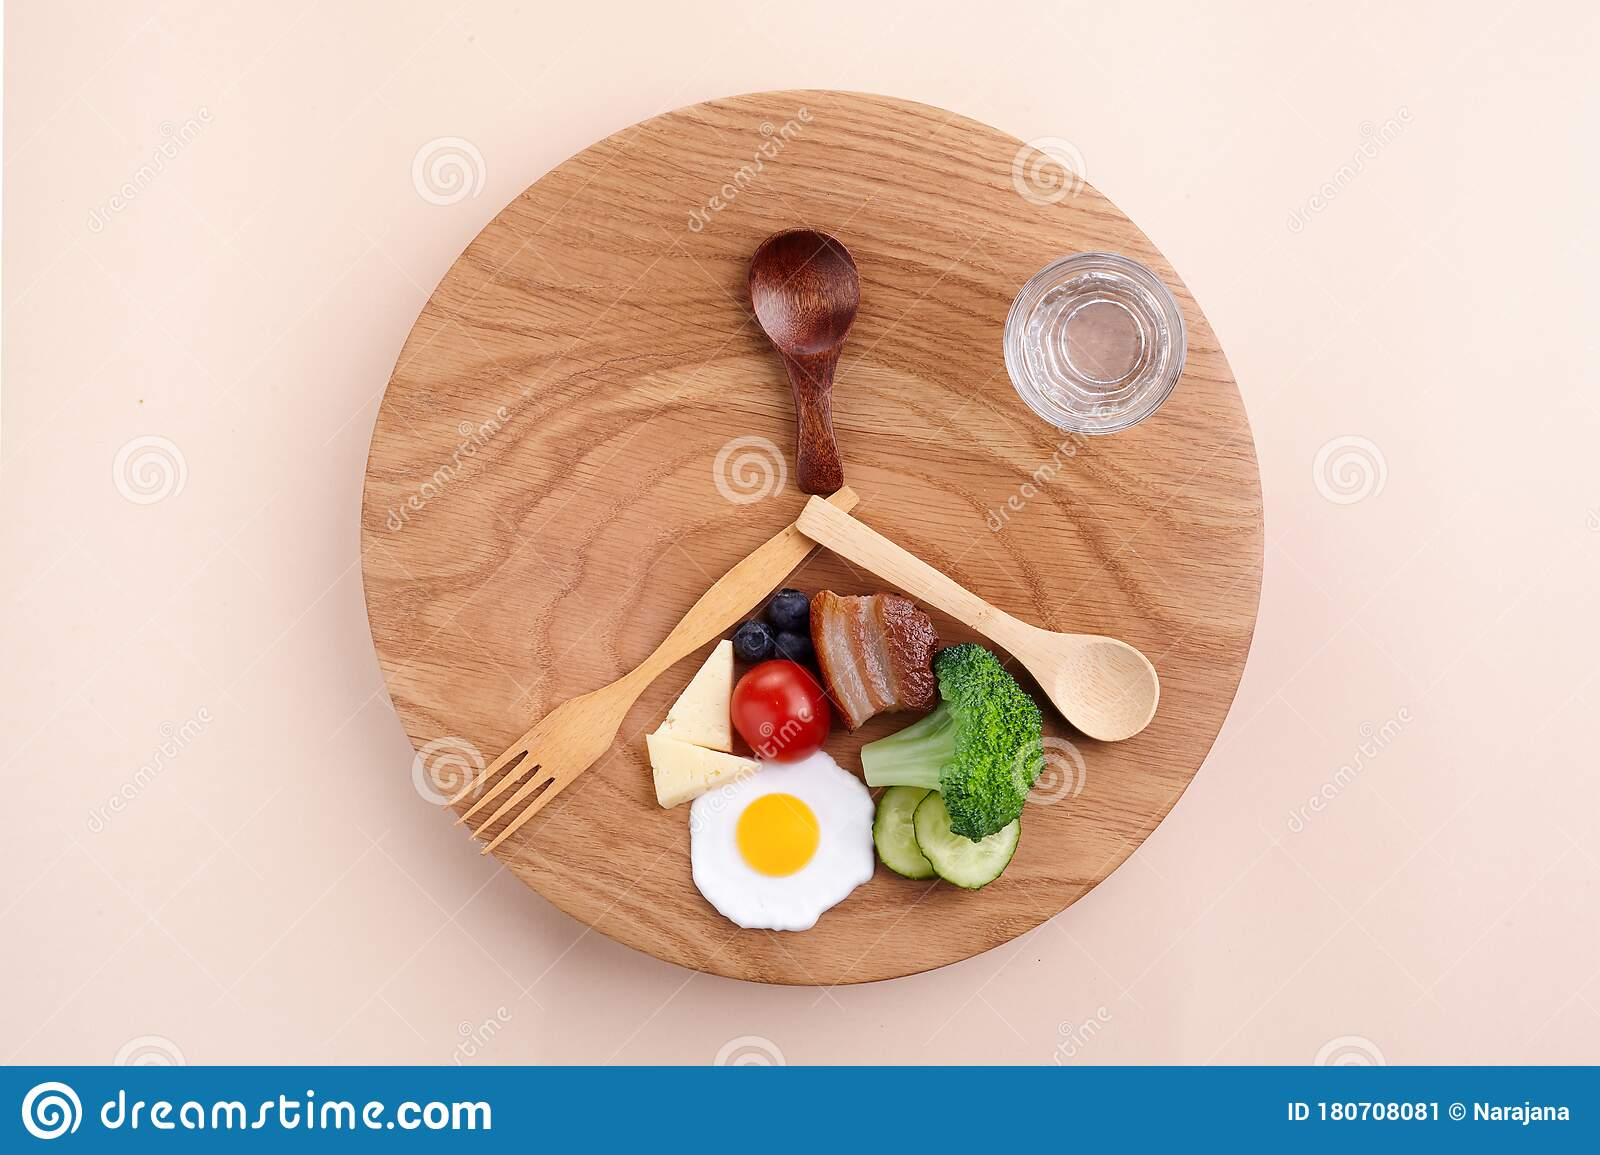 Intermittent Fasting Healthy Breakfast Diet Food Concept Organic Meal Fat Loss Concept Weight Loss Stock Image Image Of Fresh Kitchen 180708081